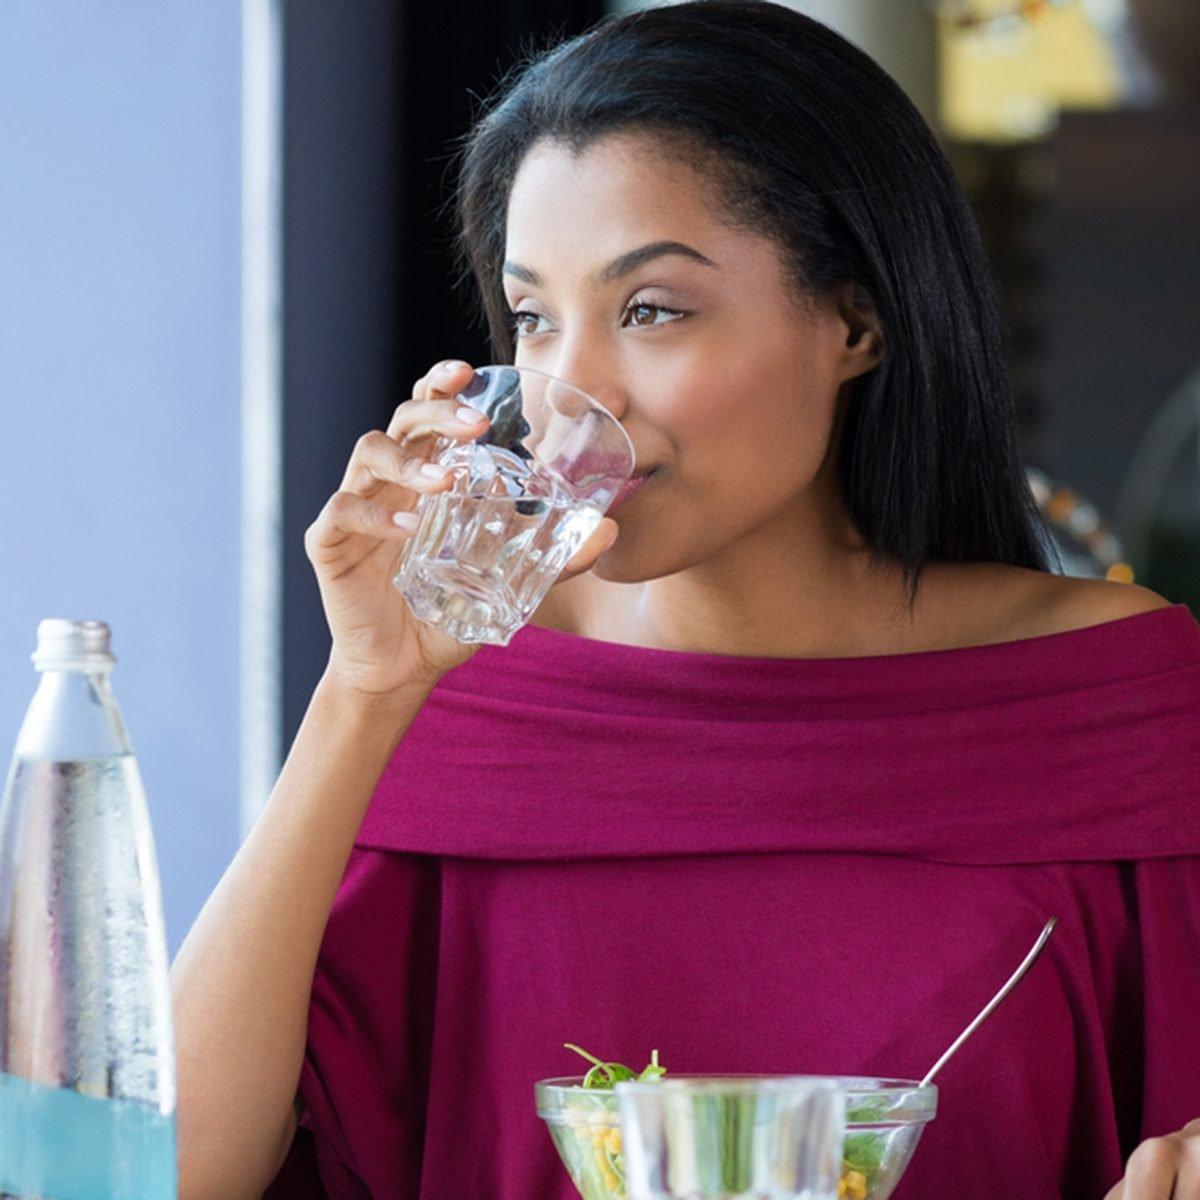 African girl drinking water during her lunch break at restaurant.